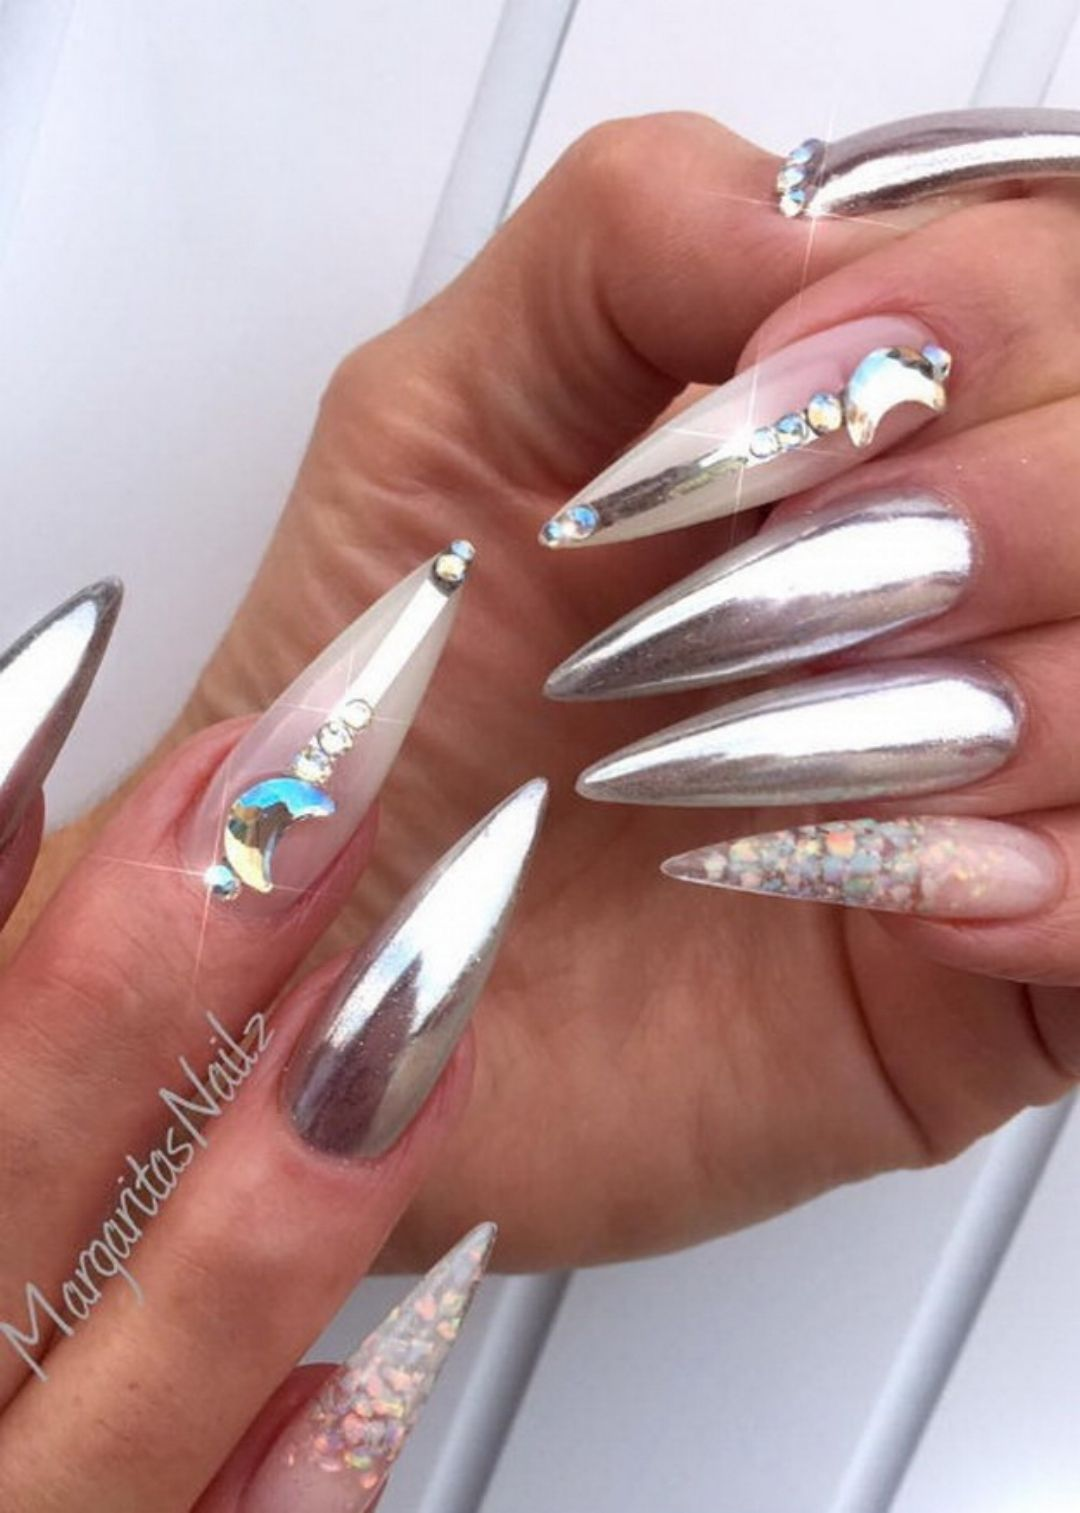 💅🏻 33 Trend-Setting Nail Art Designs by @margaritasnailz